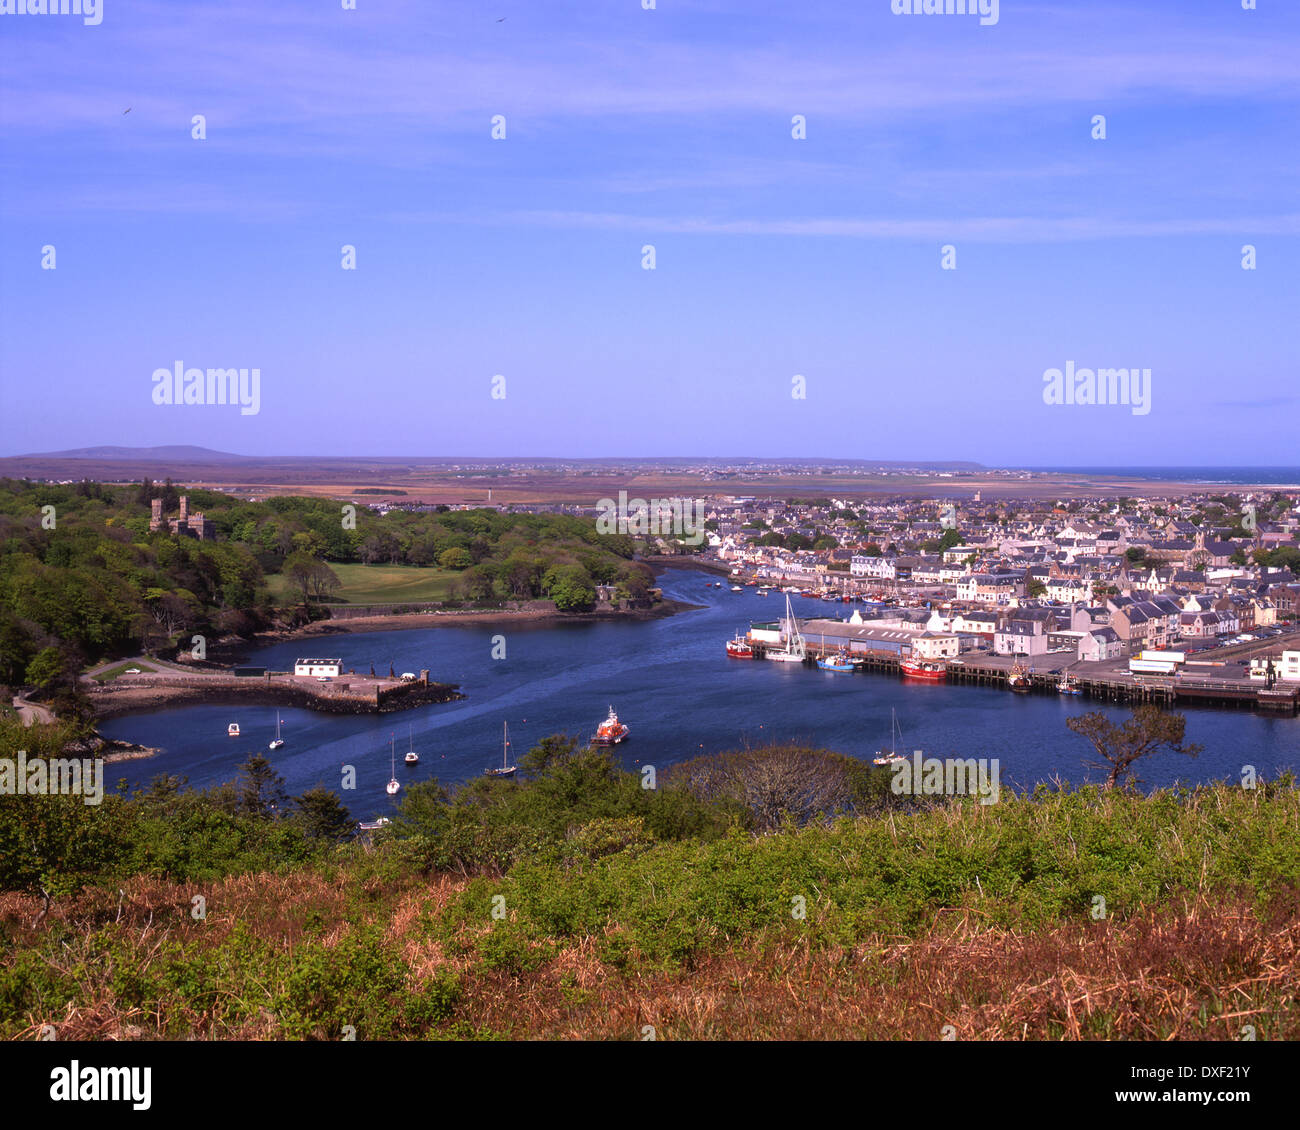 Overlooking Stornoway harbour and town, Isle of Lewis, Outer Hebrides - Stock Image